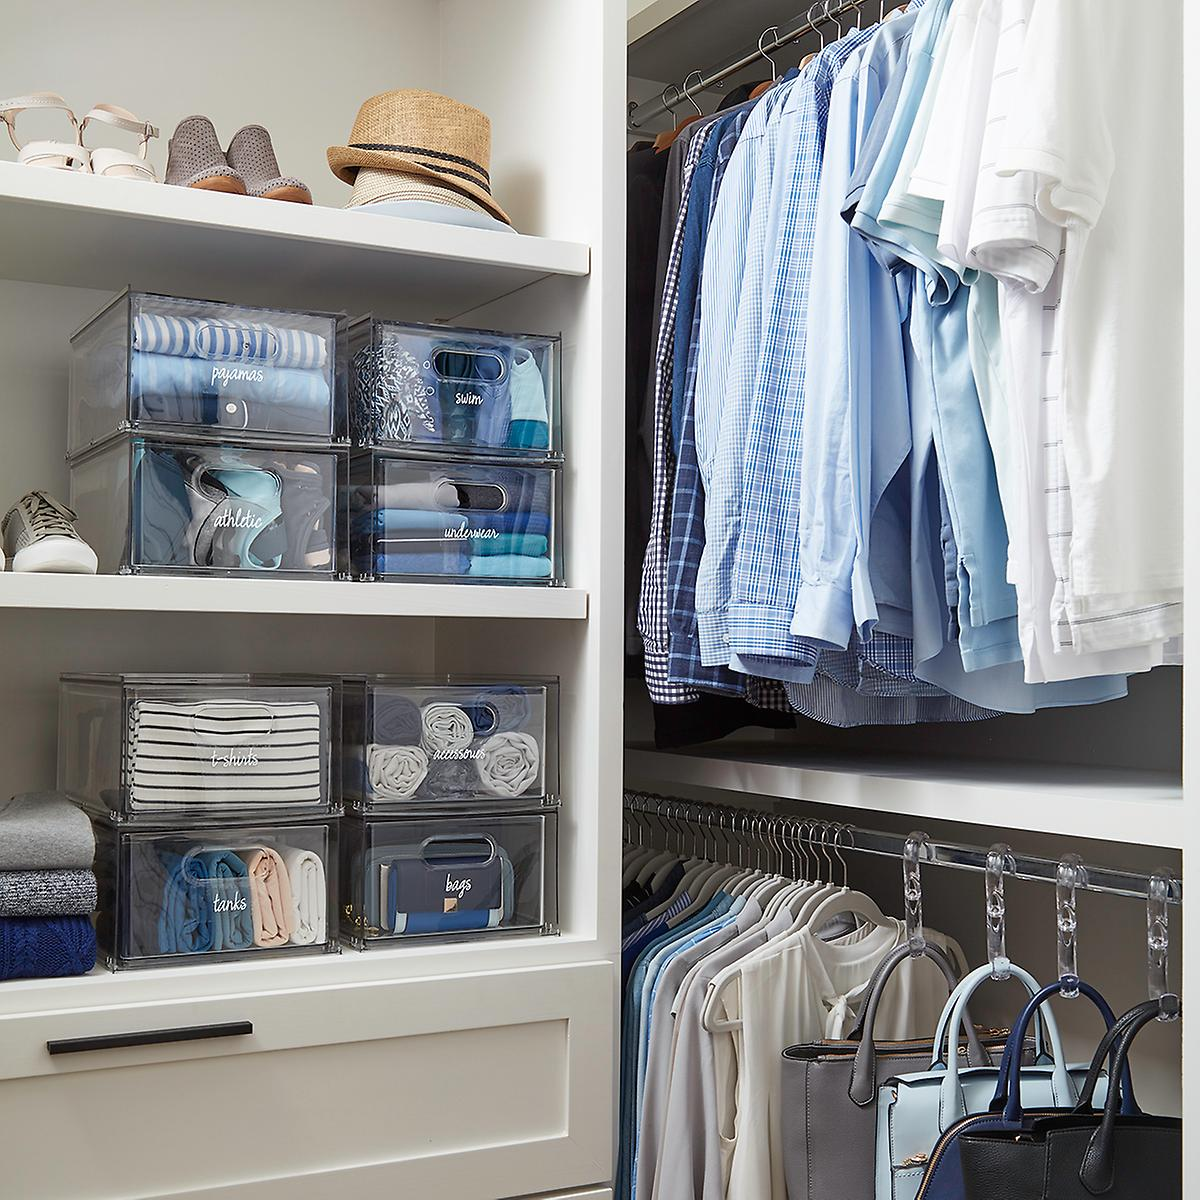 Closet with labels on bins